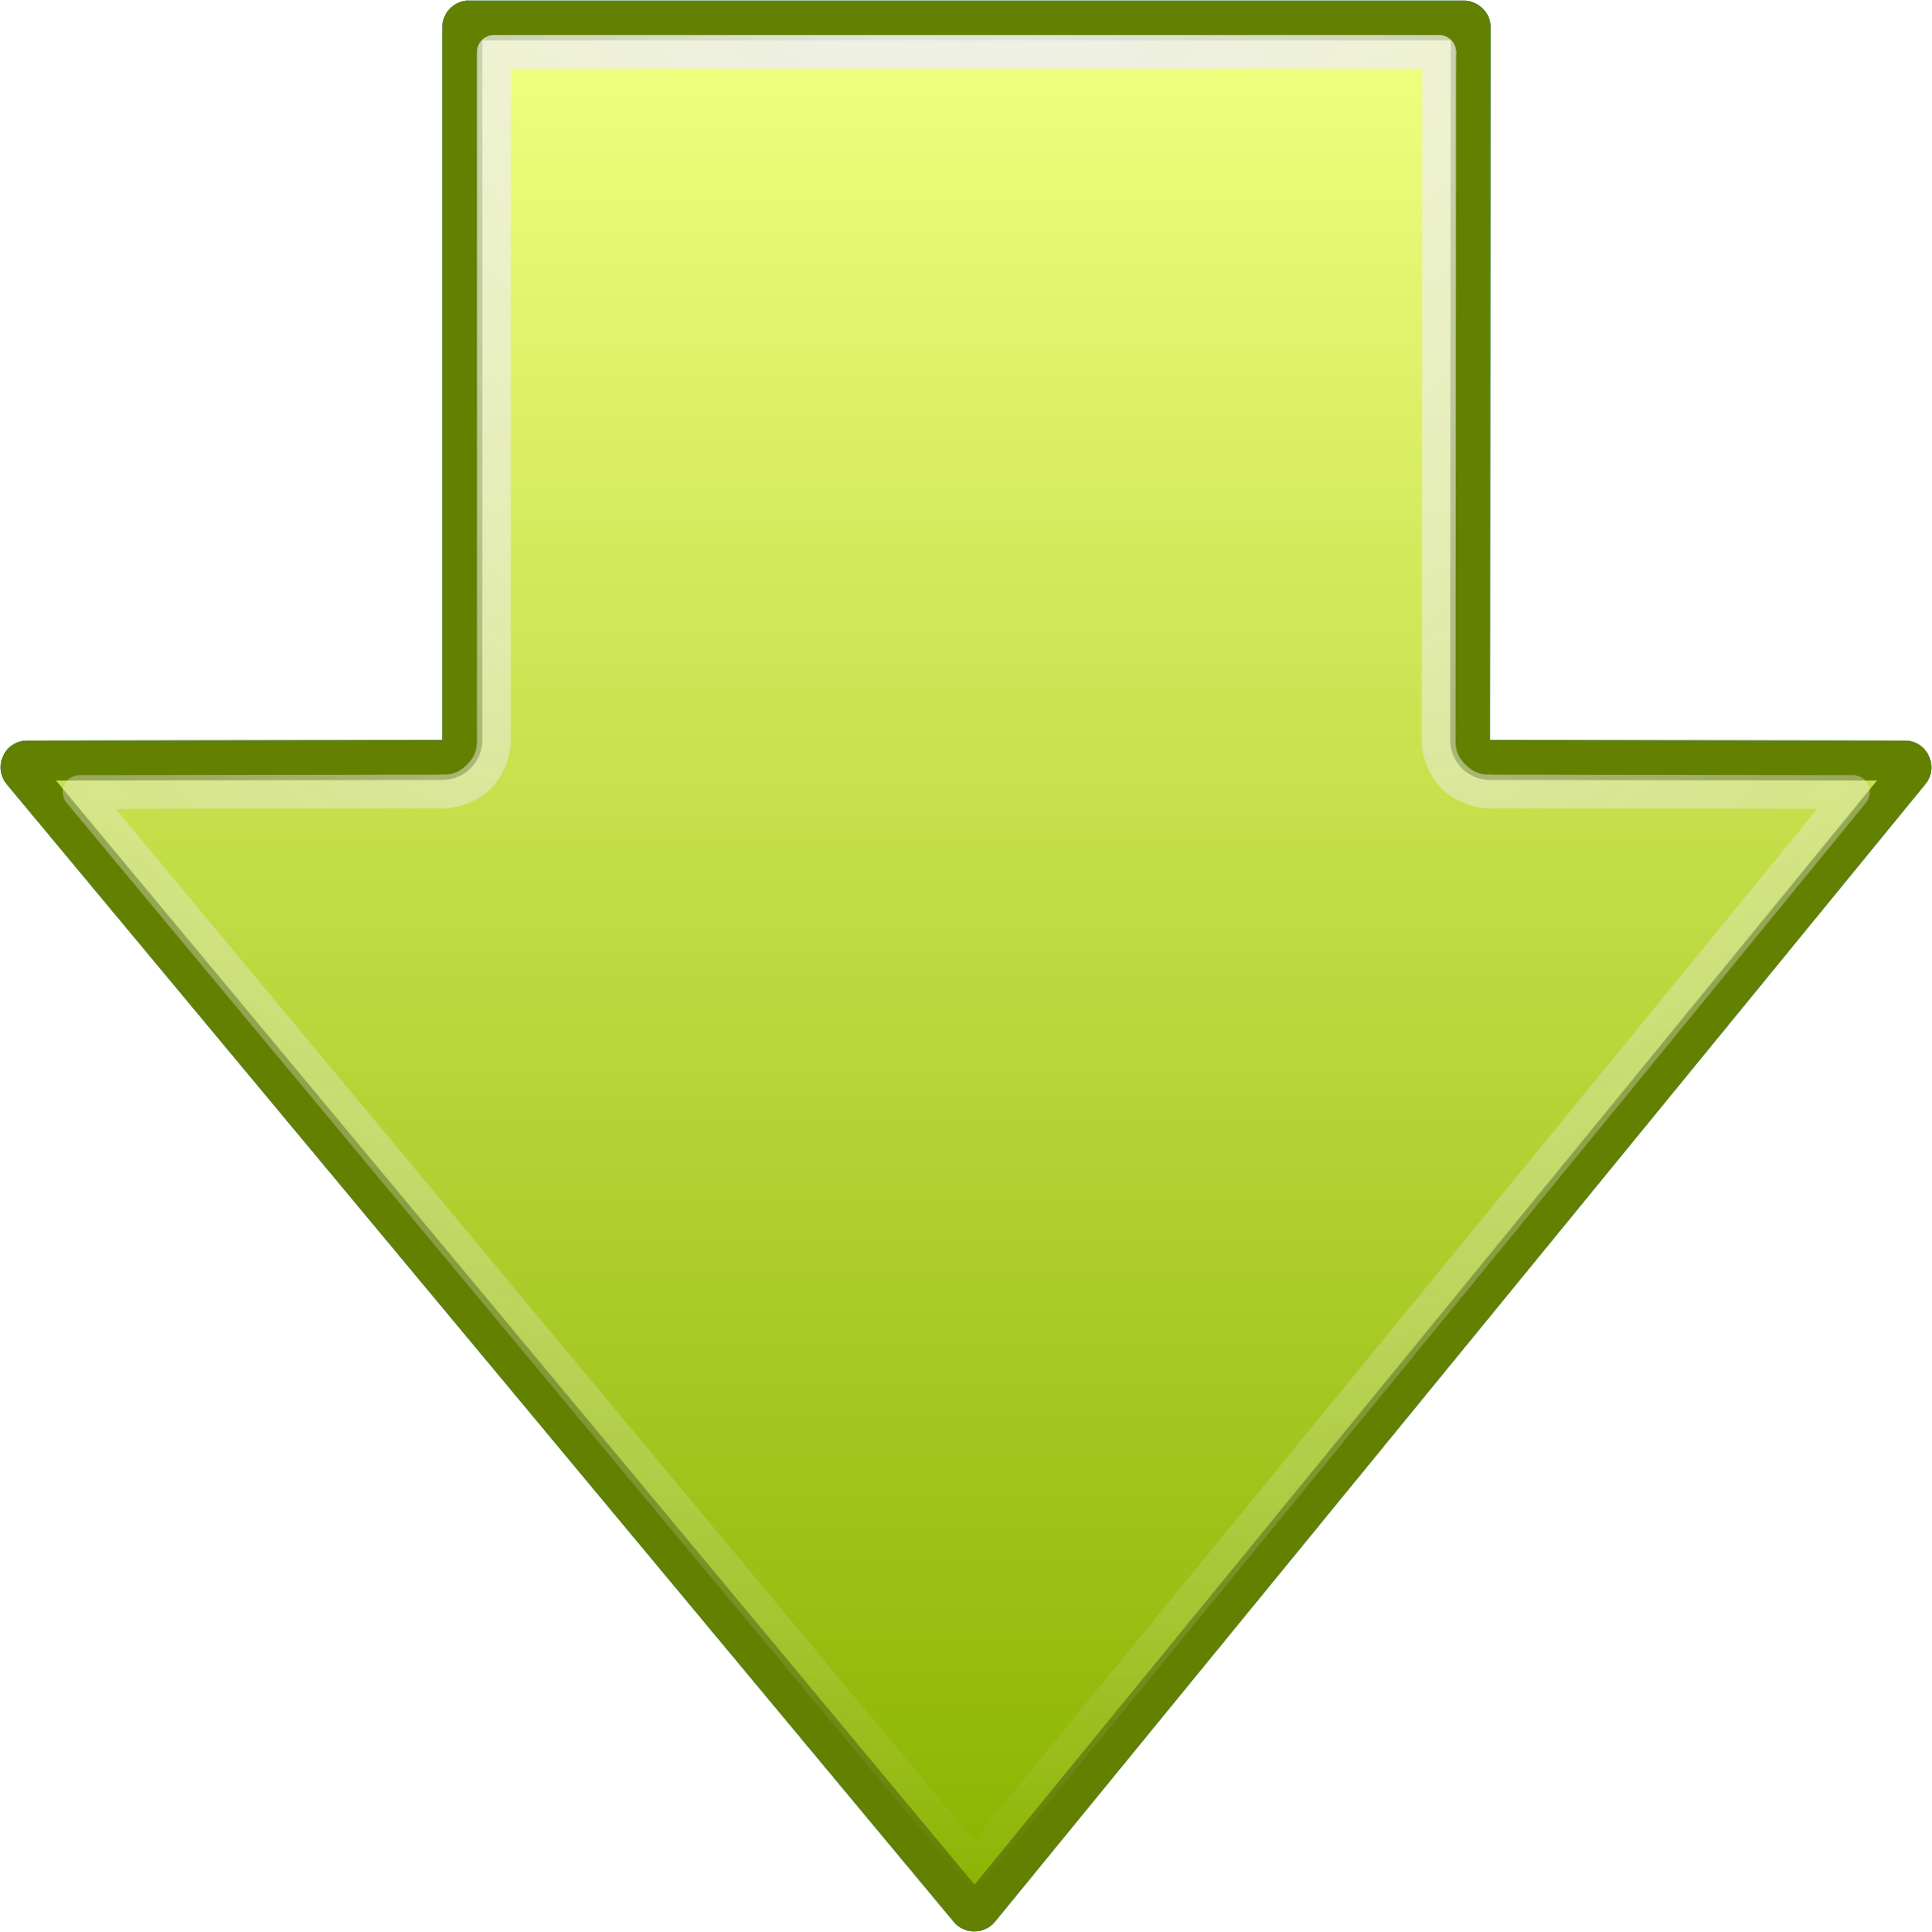 Download arrow icon png. Go down icons free